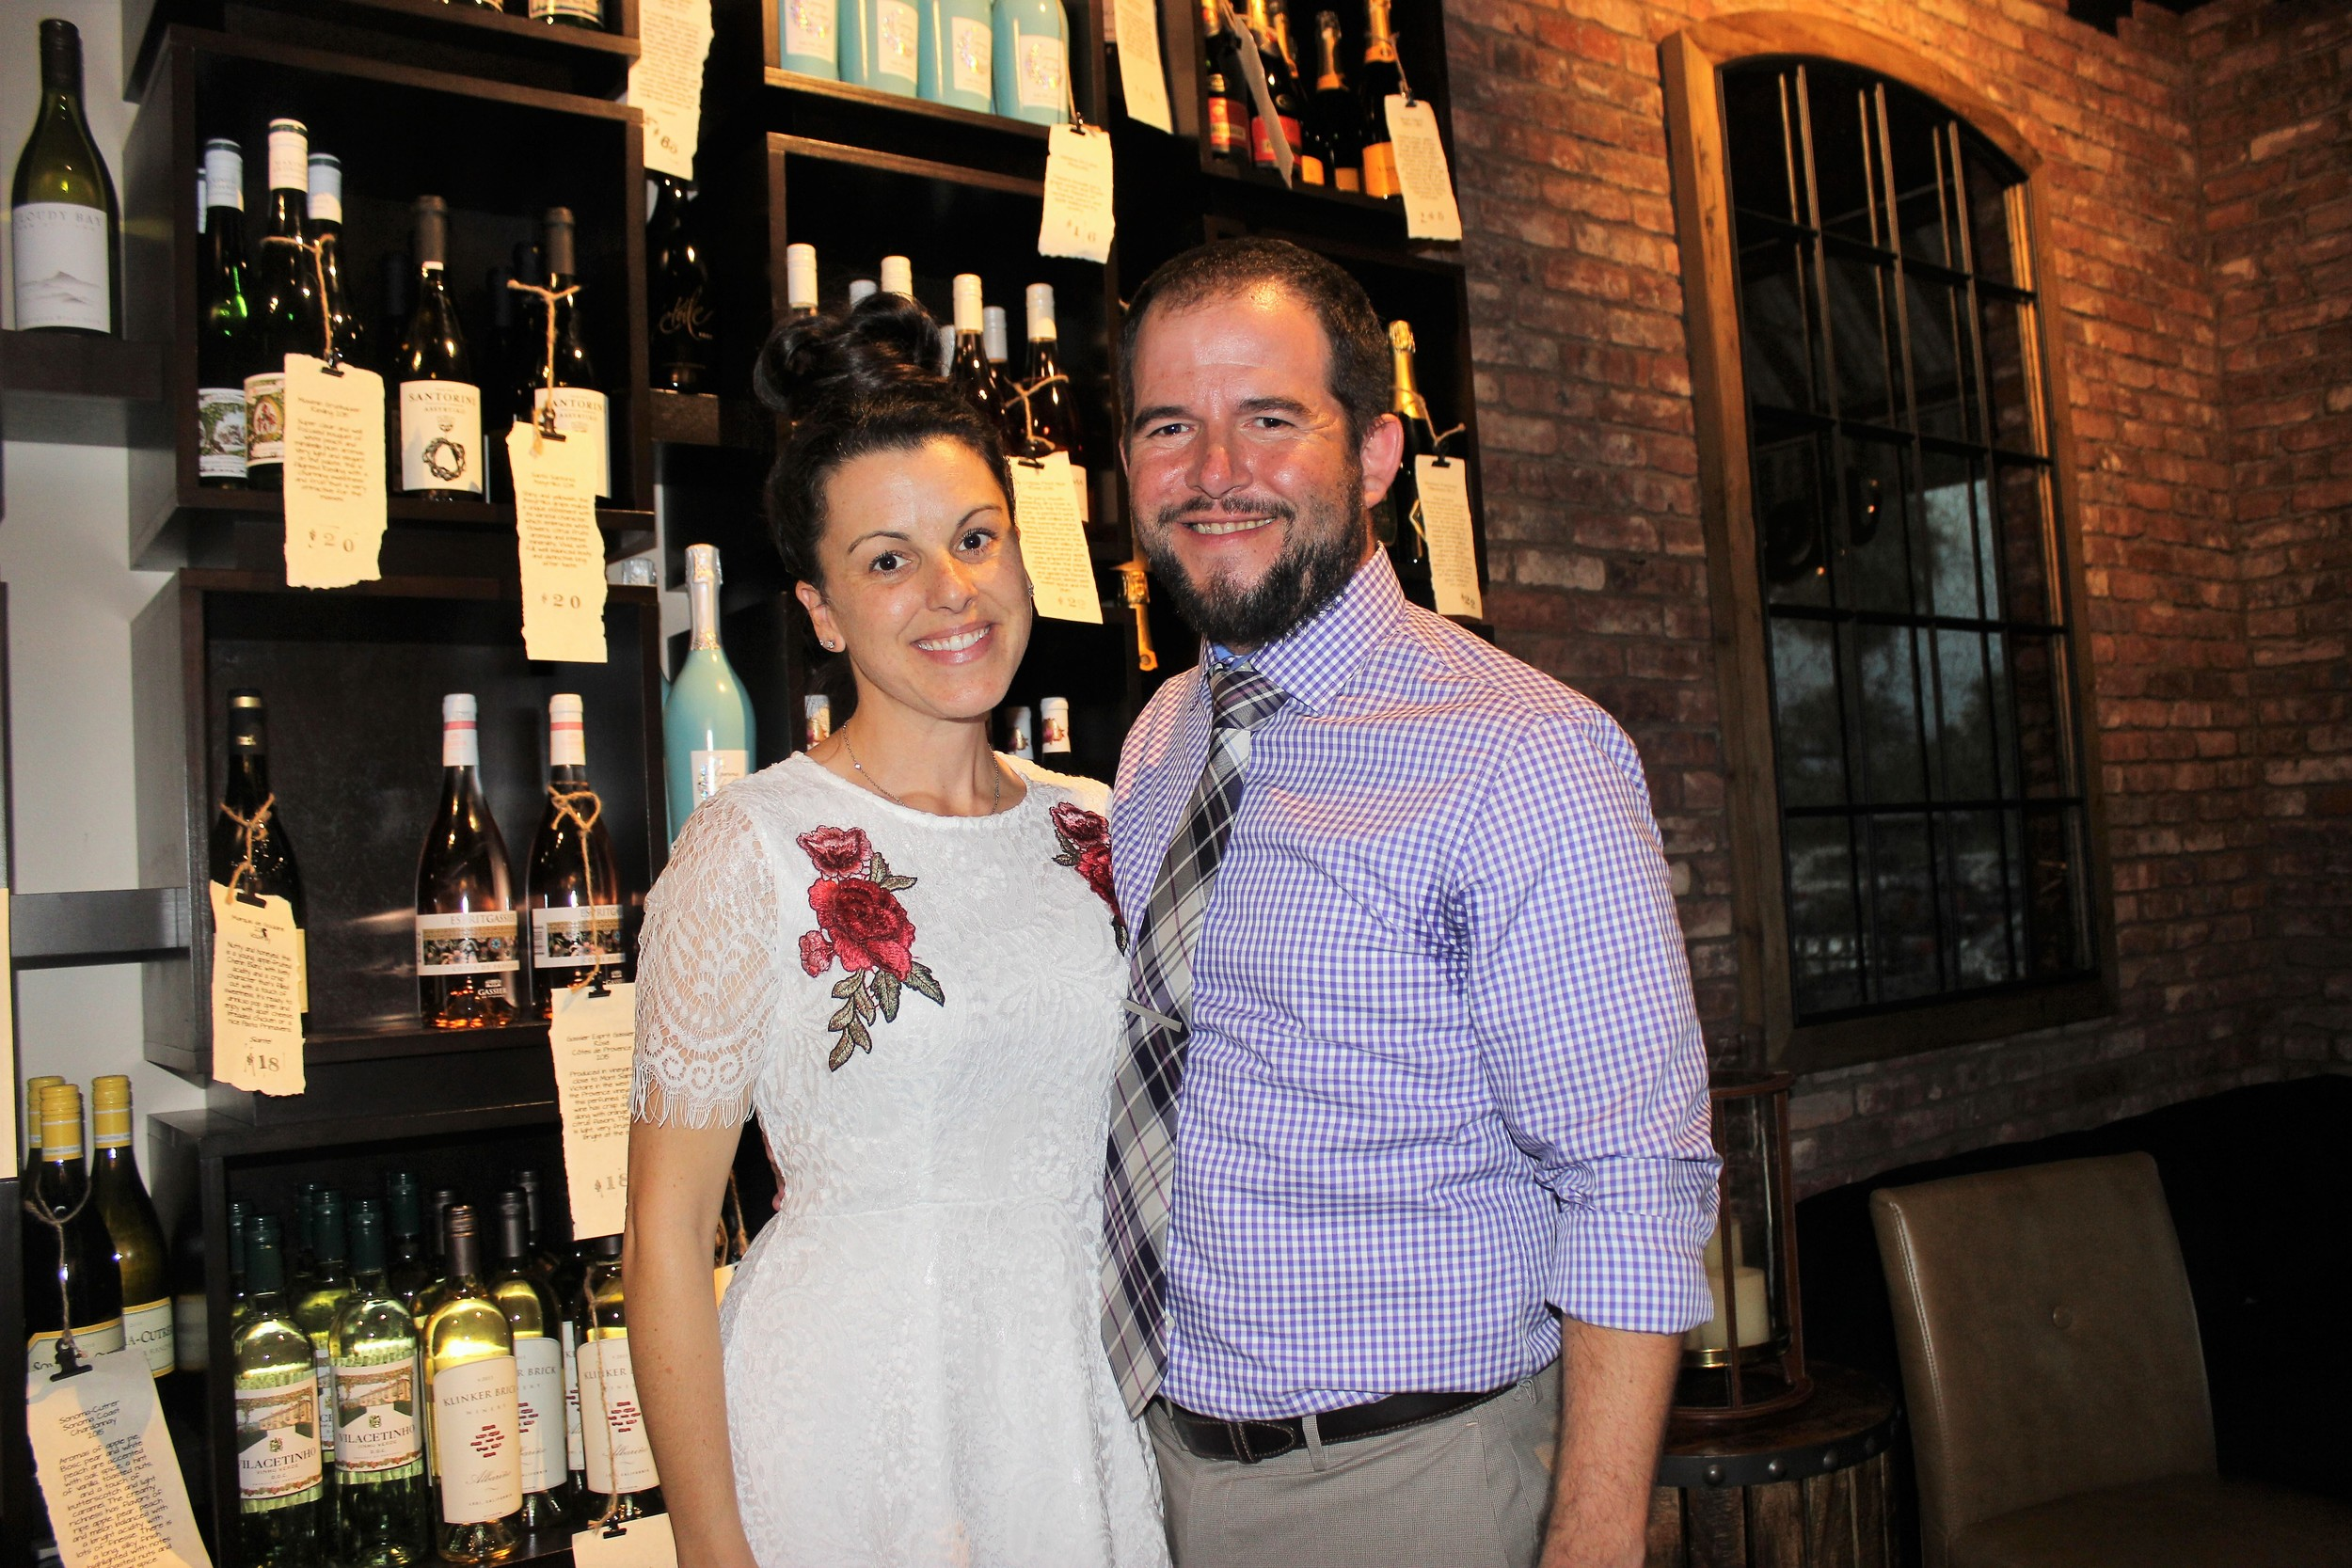 Shaun and Steve Lourie celebrate the first anniversary of their shop, Coastal Wine Market & tasting room, located at 641 Crosswater Parkway in Nocatee.